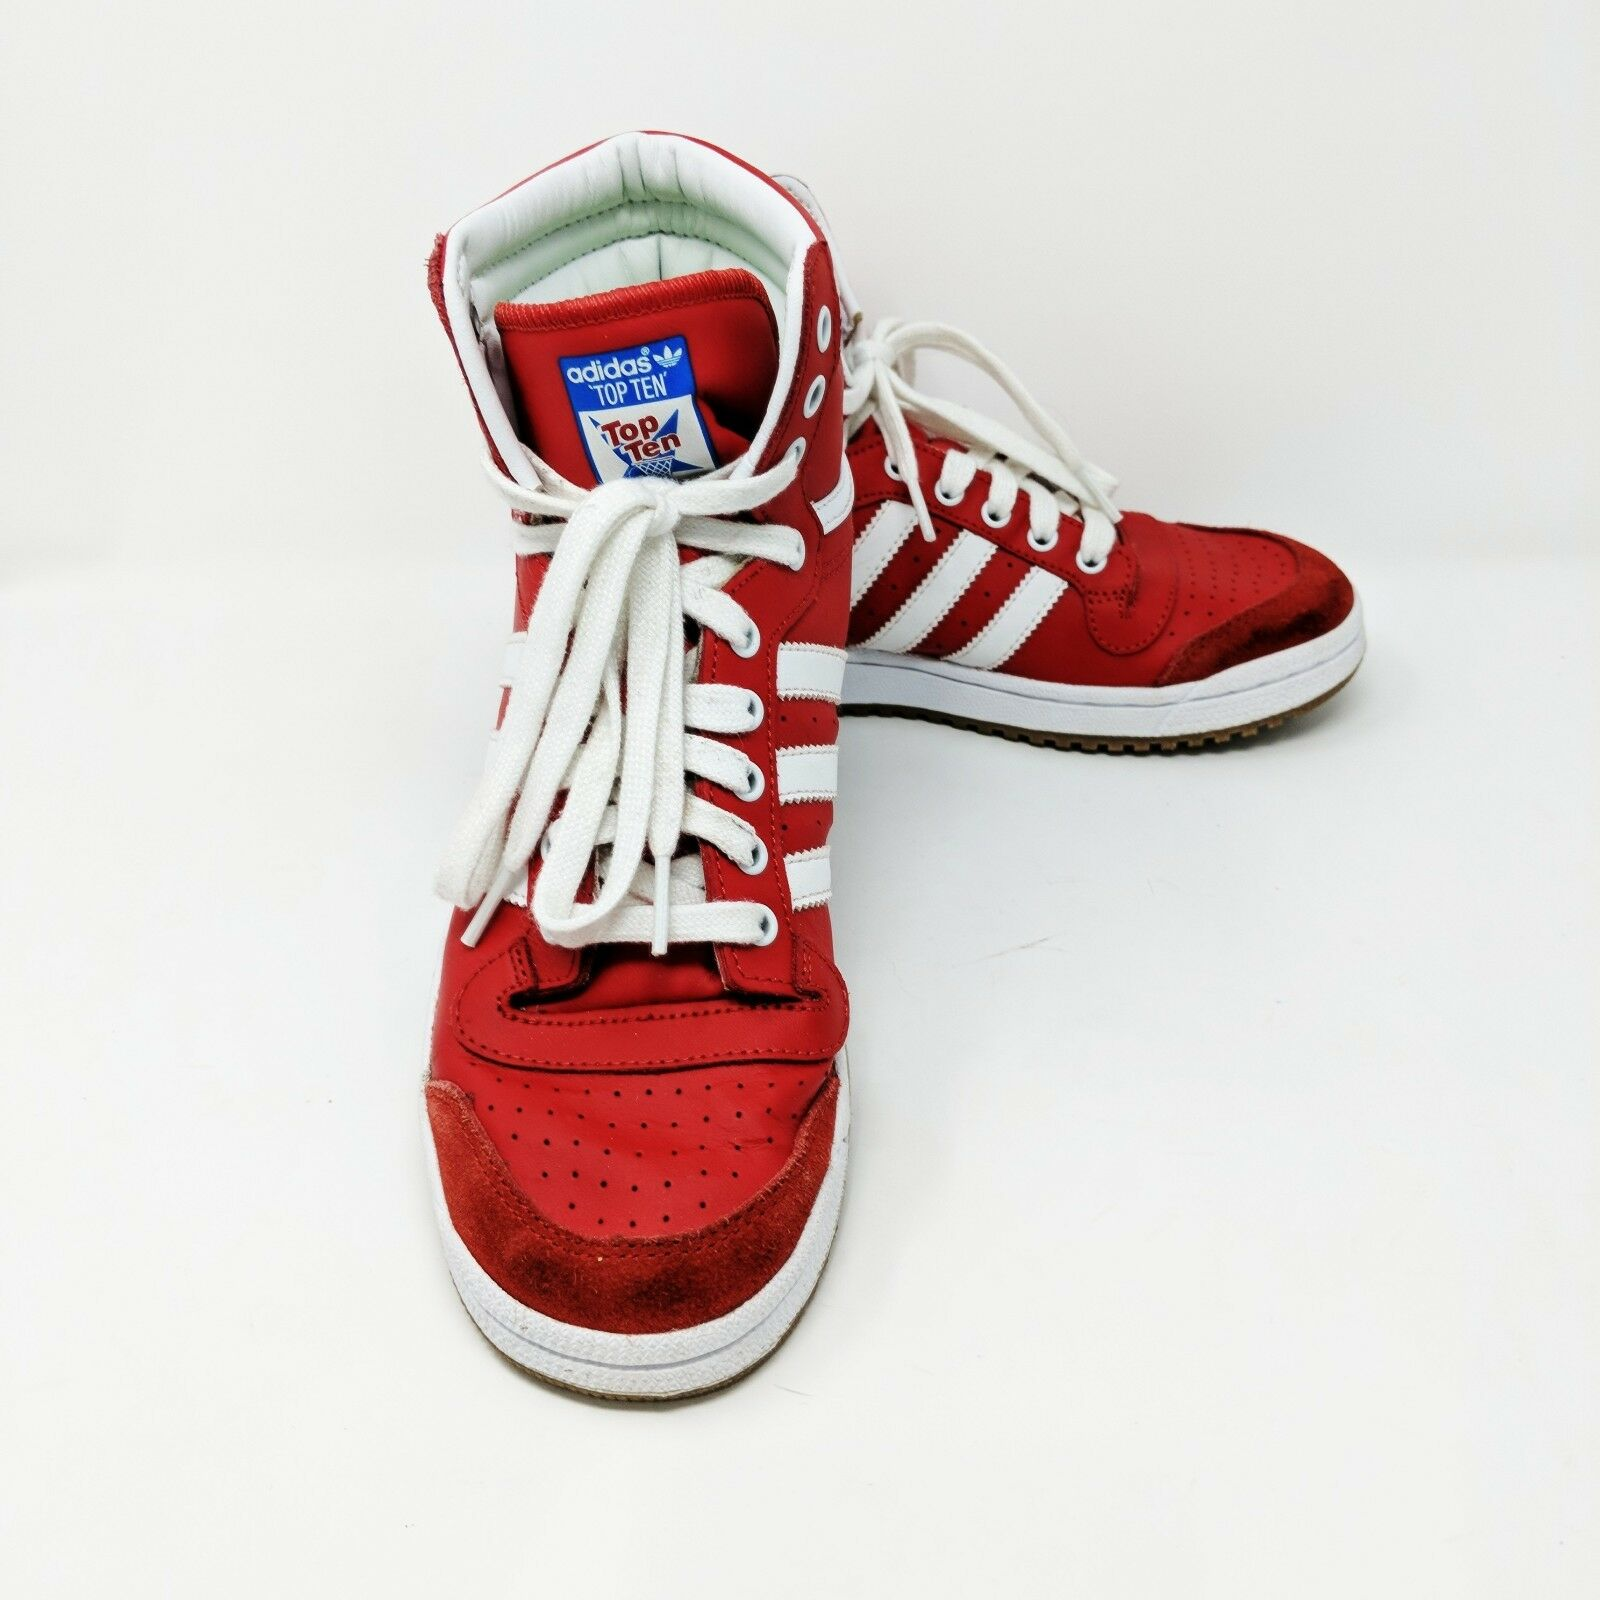 adidas Men's Top Tens Hi Top Red White Gum D74479 Athletic Sneakers Size 6 D74479 Gum d94c5a